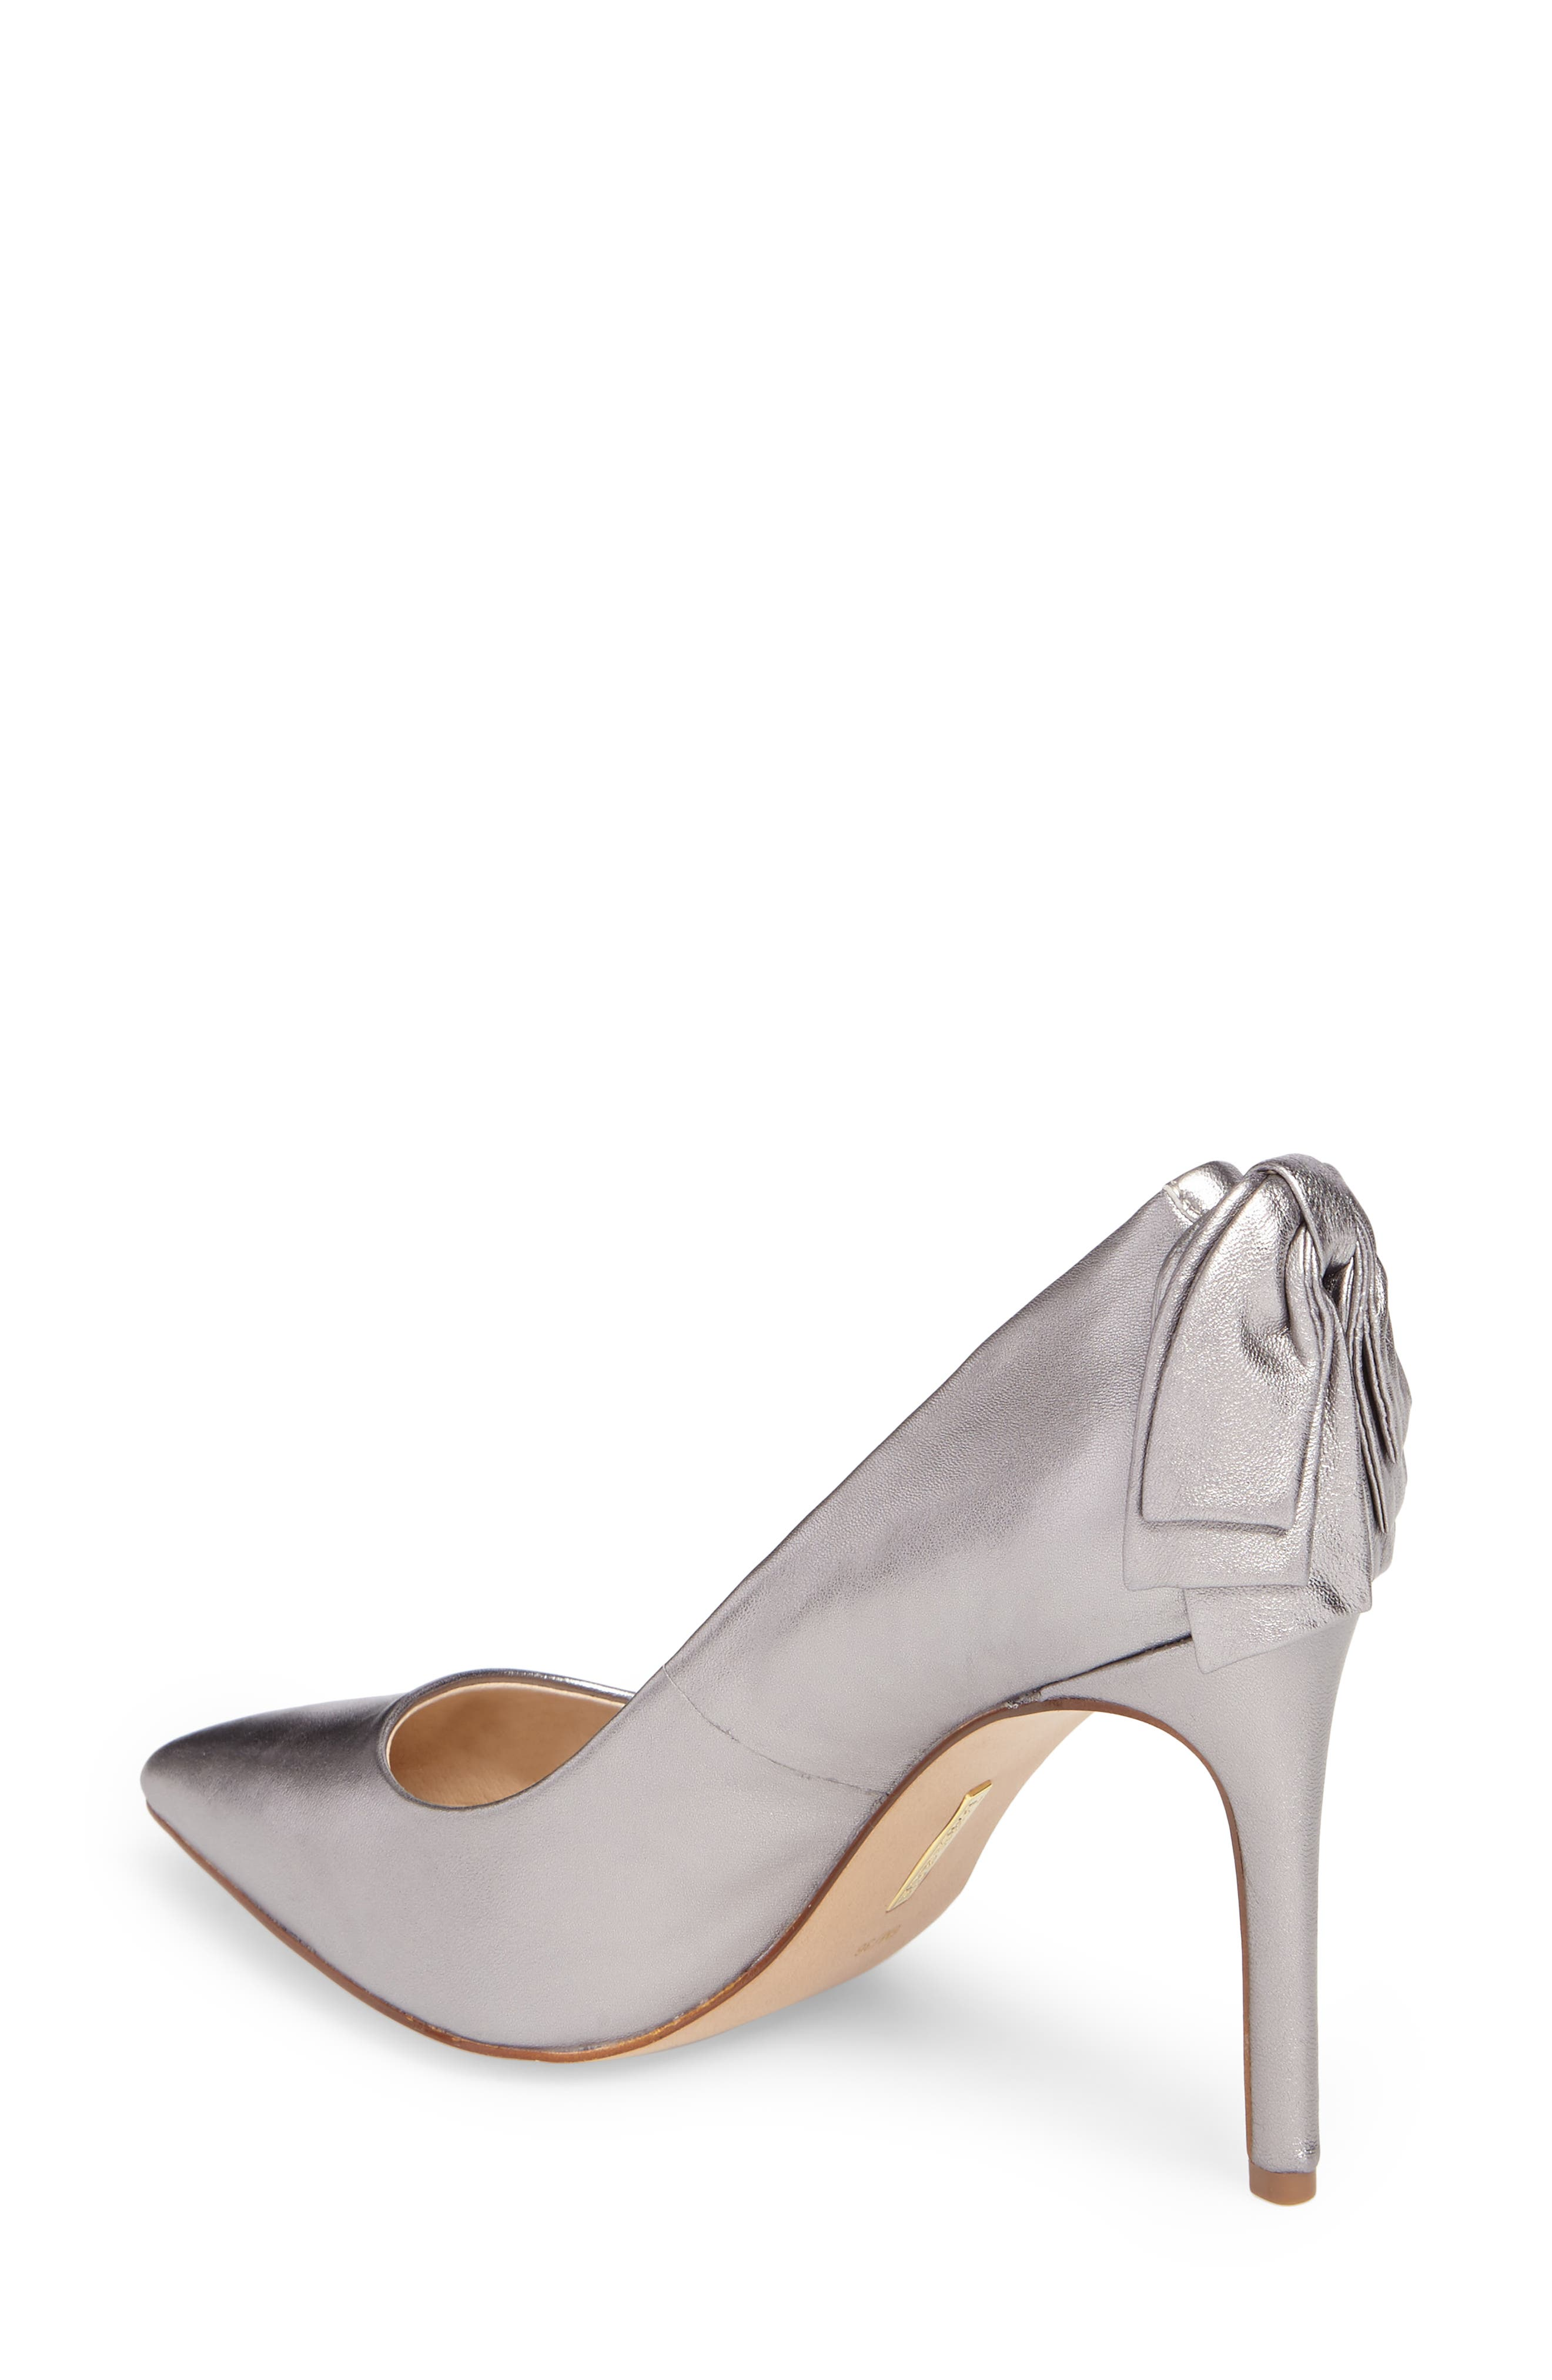 Josely Pointy Toe Pump,                             Alternate thumbnail 2, color,                             Chrome Leather